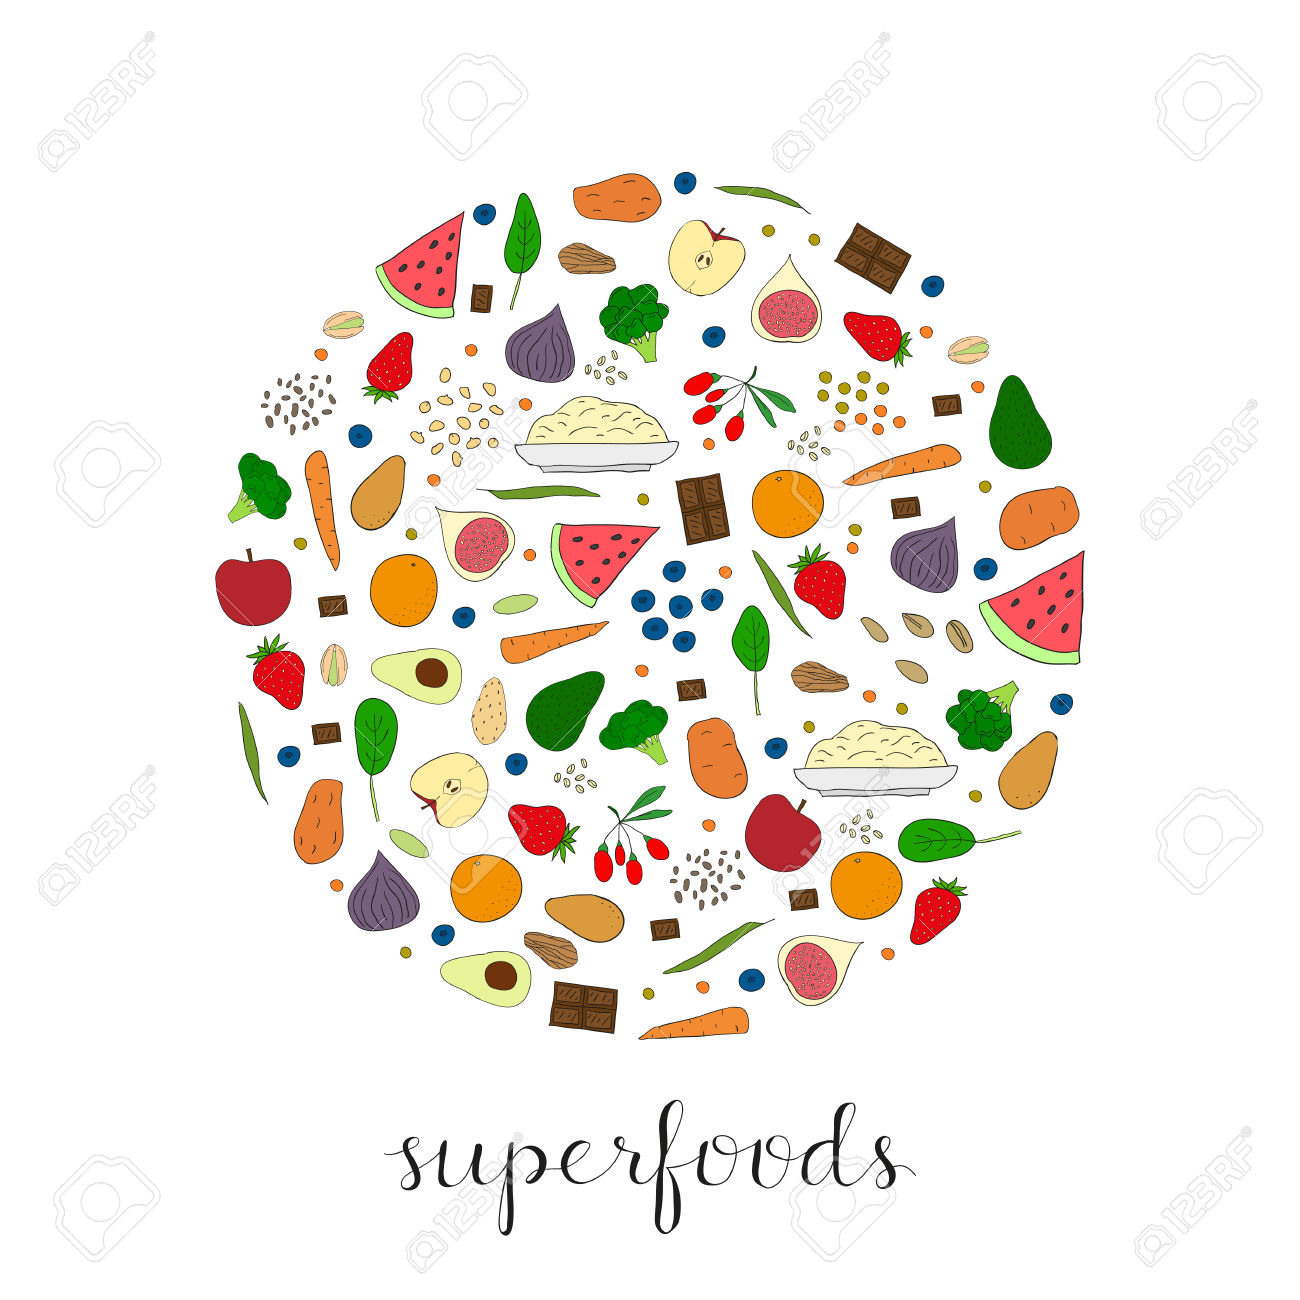 Super food clipart jpg transparent stock 1,718 Super Food Stock Vector Illustration And Royalty Free Super ... jpg transparent stock